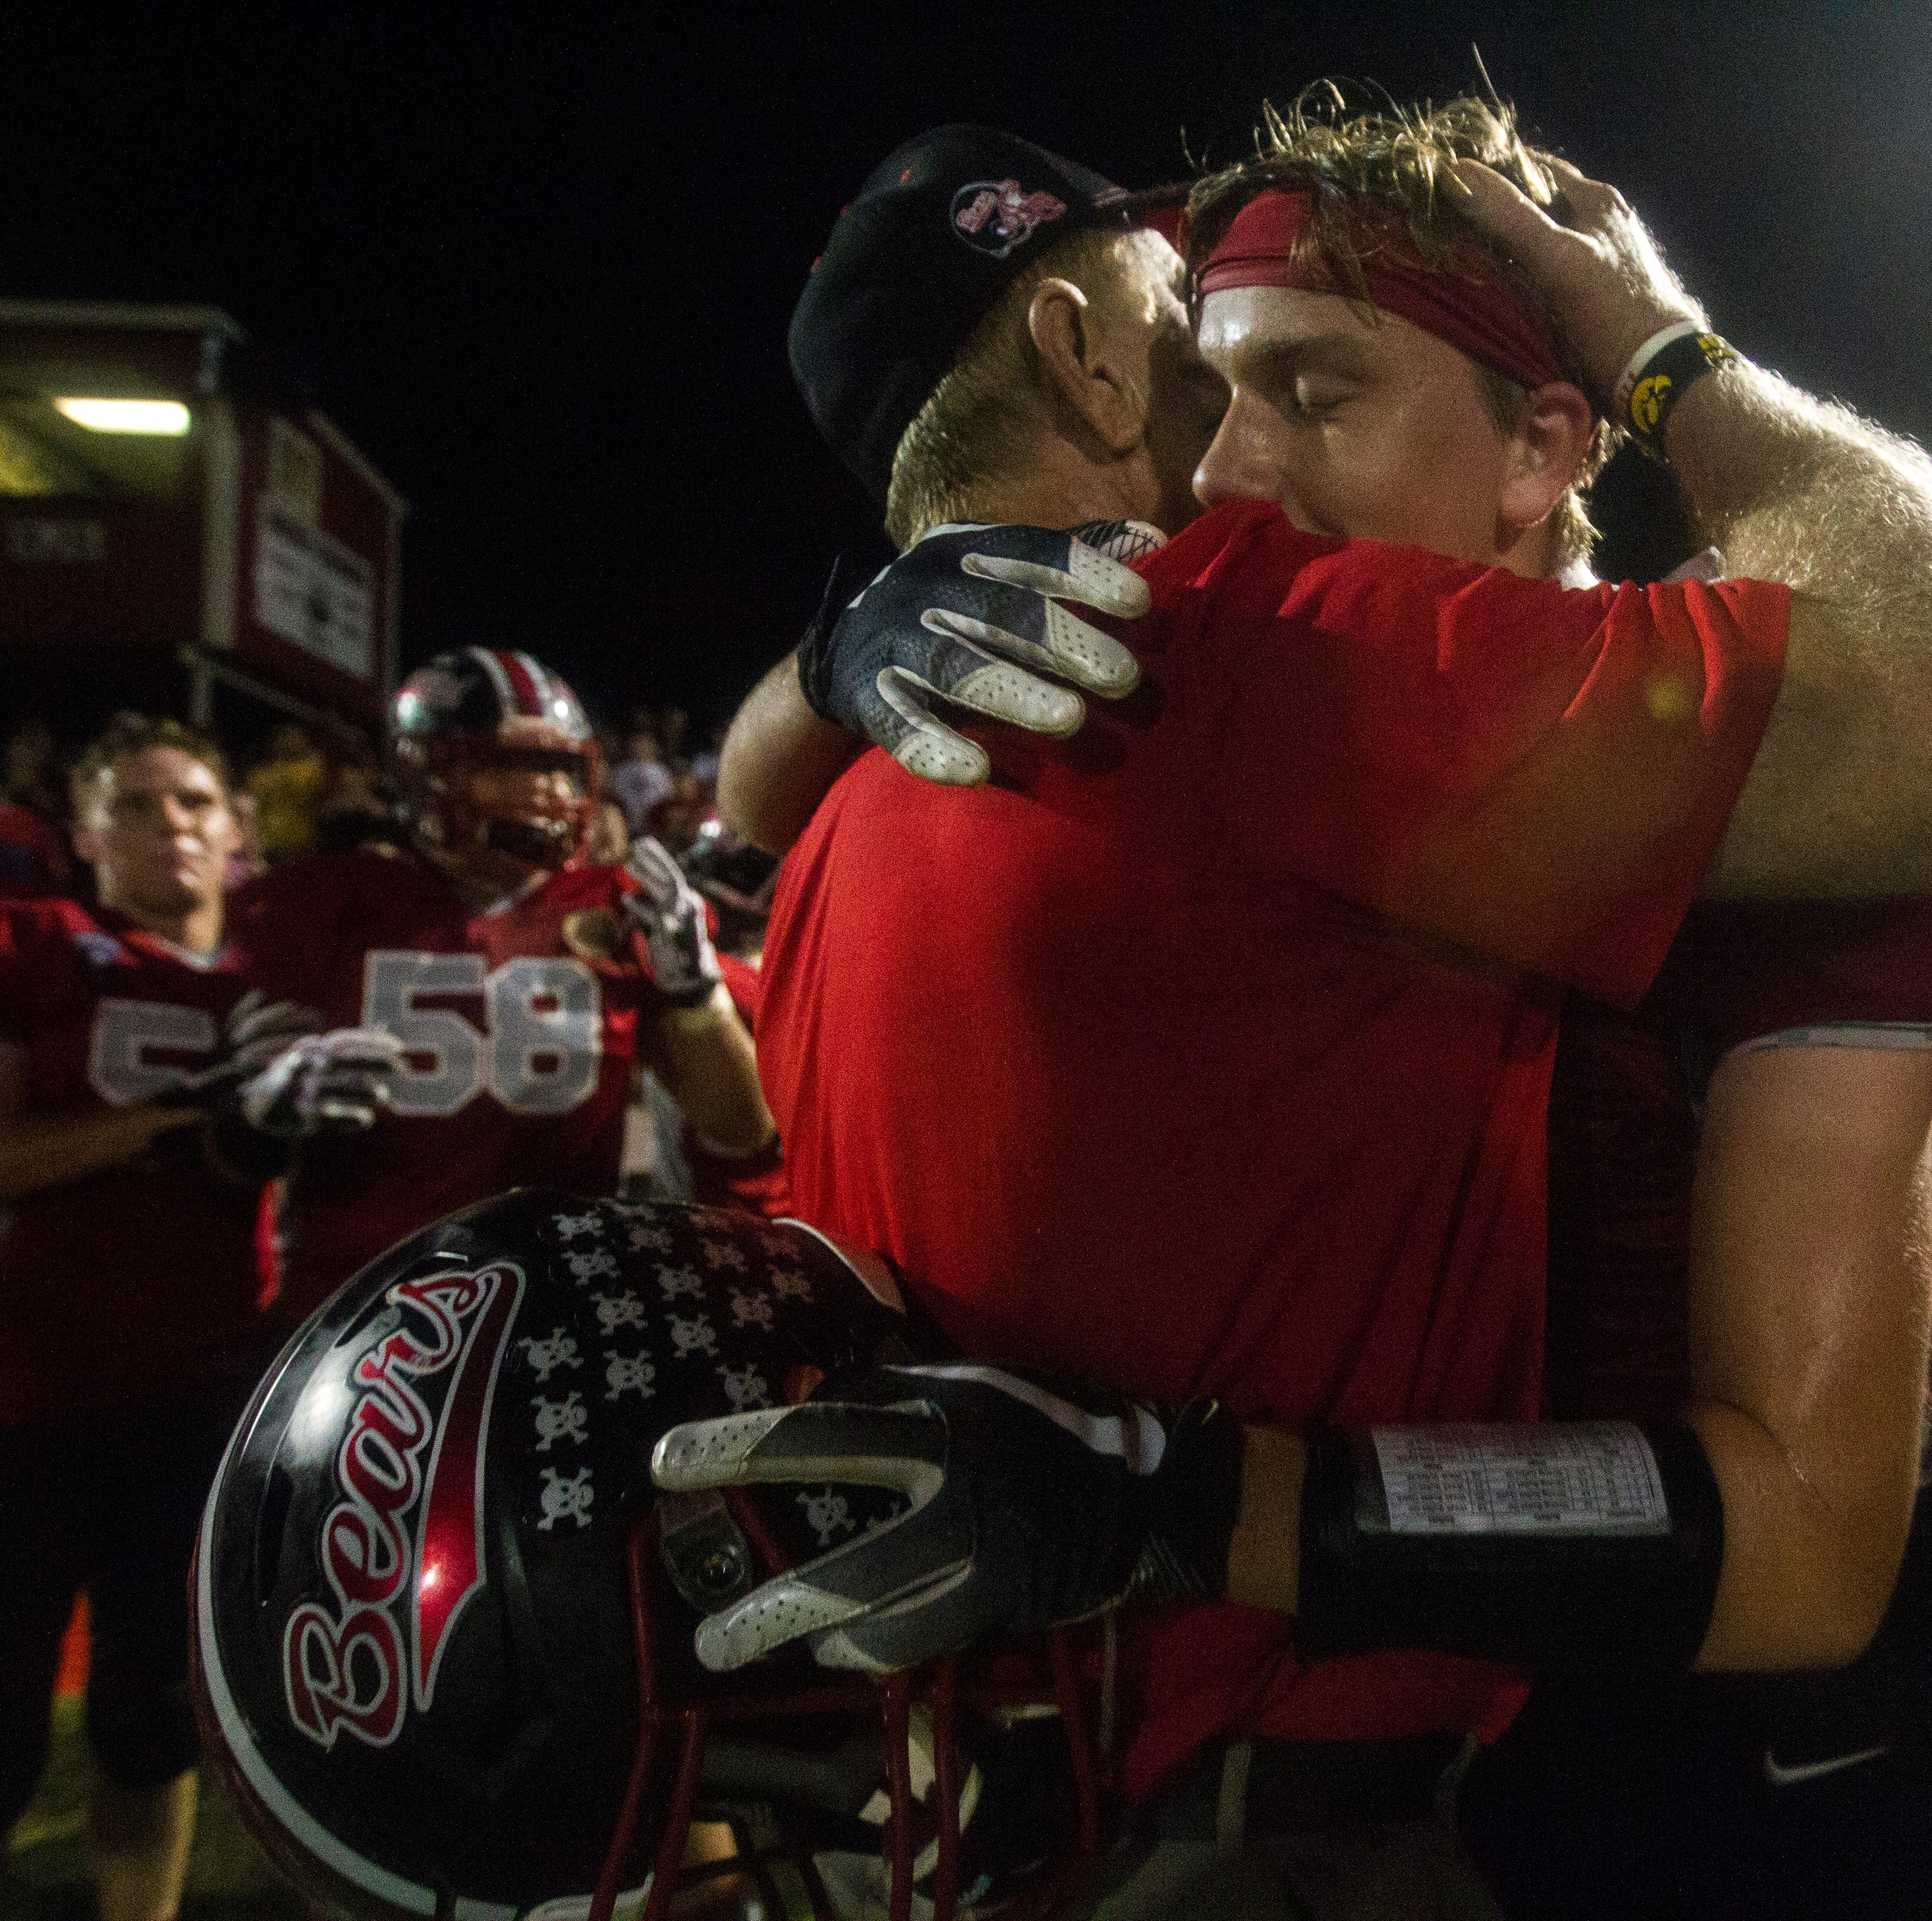 West Branch football head coach Butch Pedersen is embraced by his players after a Class 1A varsity football game on Friday, Sept. 14, 2018, at the Little Rose Bowl in West Branch. West Branch defeated Tipton, 56-13, marking Pedersen's 300th win as head coach.